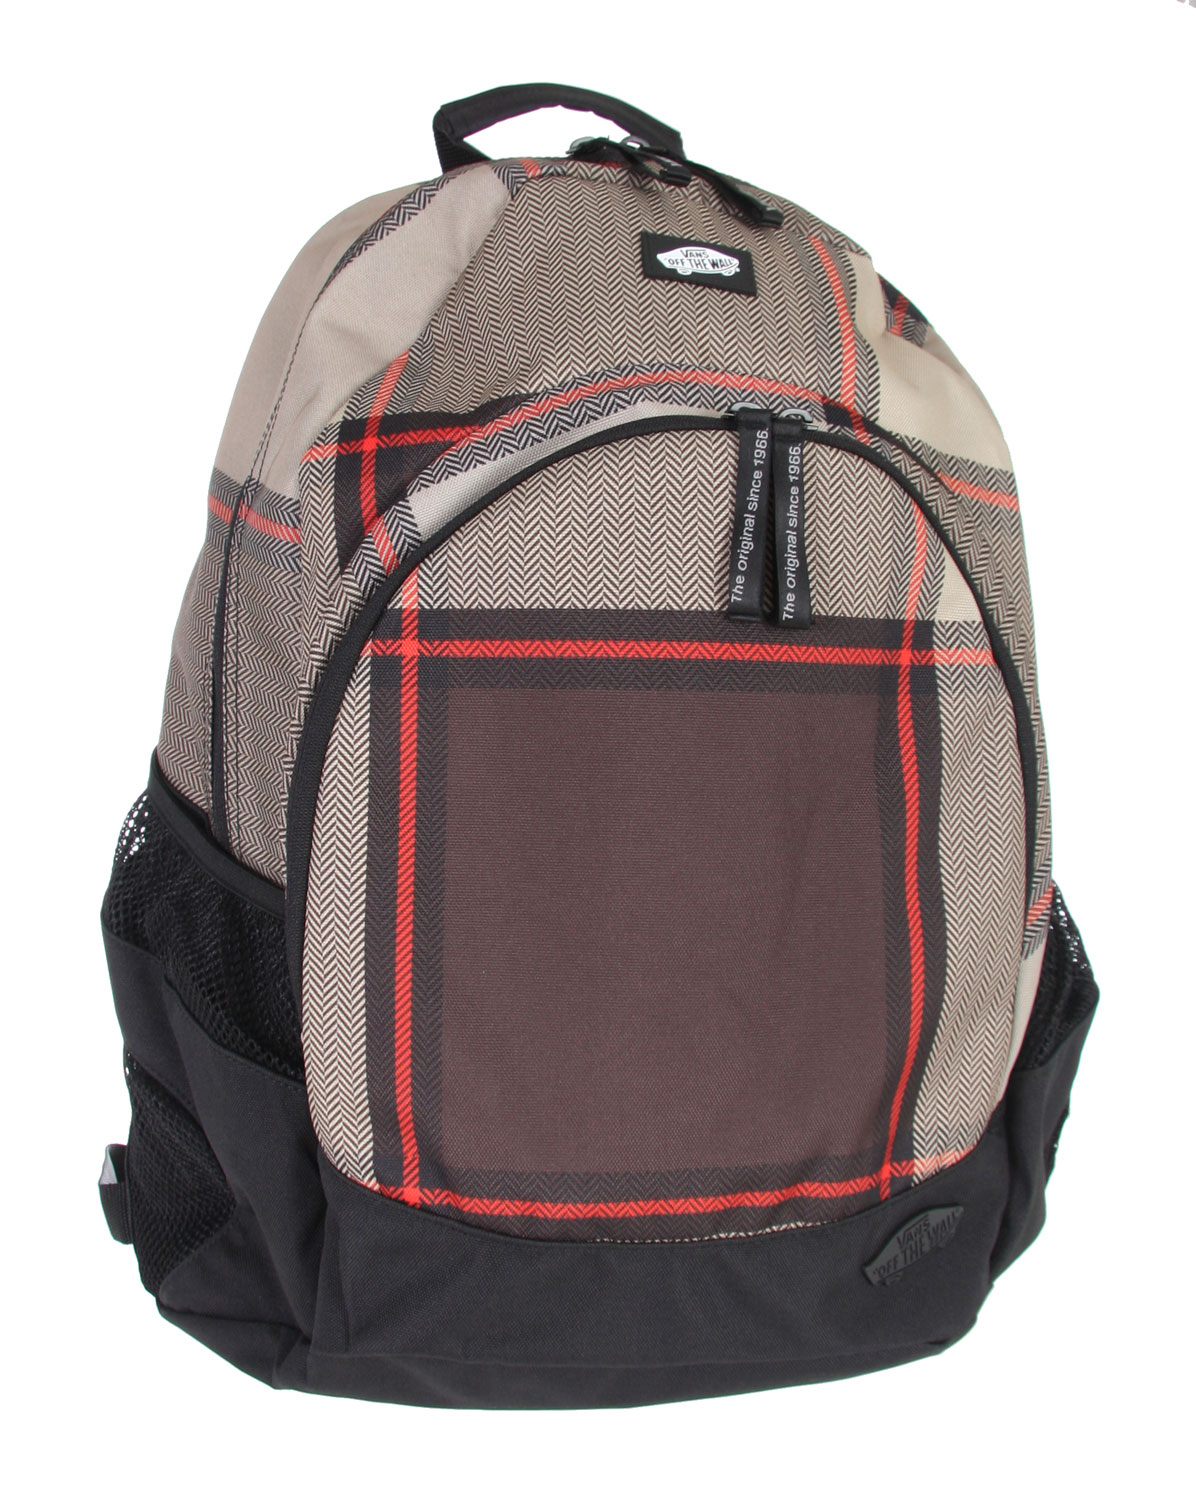 Skateboard The roomy Van Doren is a simple but perfectly designed backpack that finds favor with both those who are going to school, and those who are going out for an all-day skate session. Outside is a bold herringbone pattern-inlayed plaid print, and inside is a roomy main compartment. It also features a front pocket with an internal organizer, handy side mesh pockets, and comfortable shoulder straps. Made of sturdy 100% cotton canvas. - $23.95